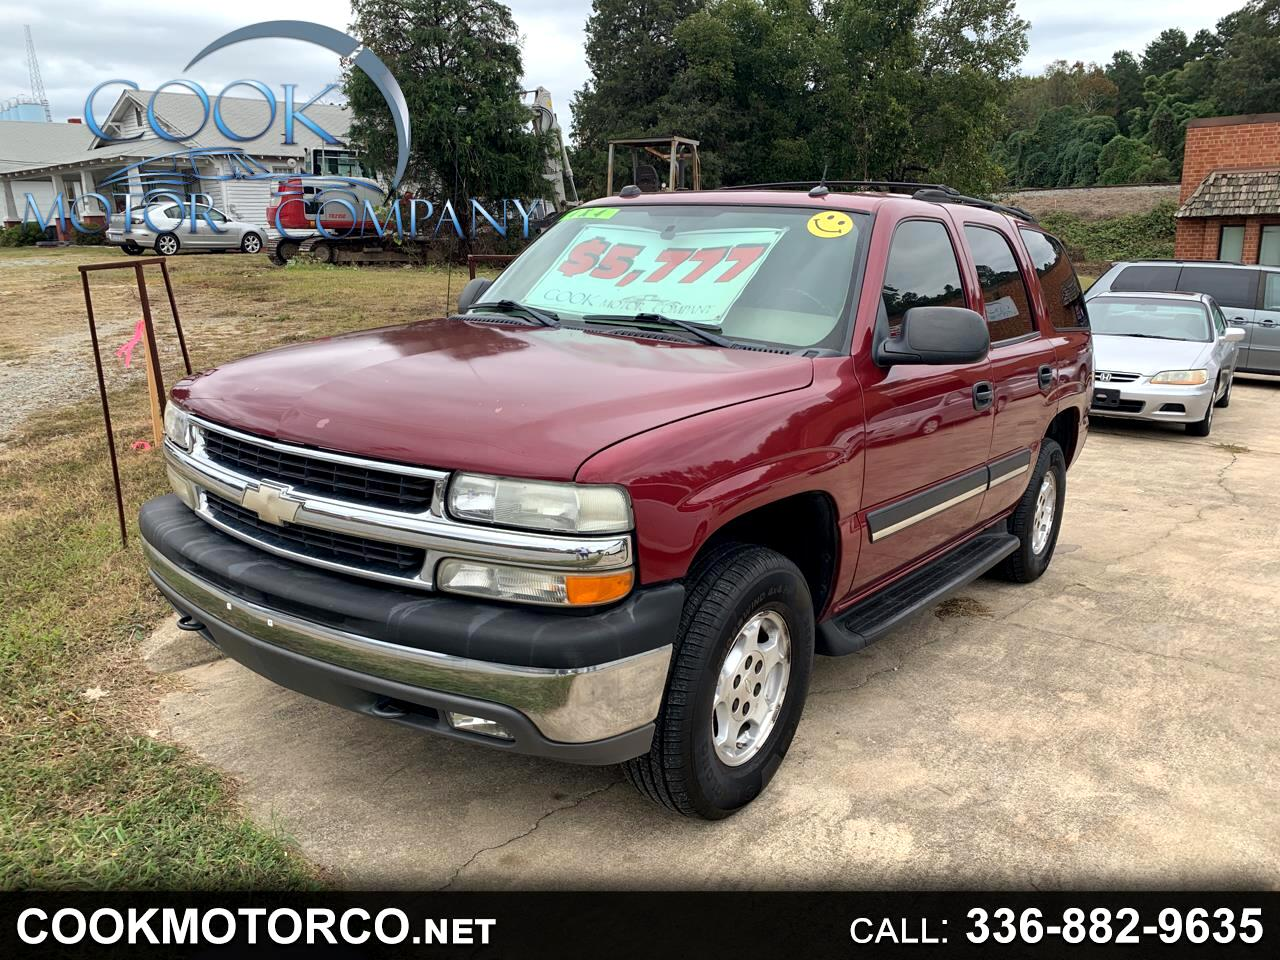 2005 Chevrolet Tahoe 1500 4dr 4WD